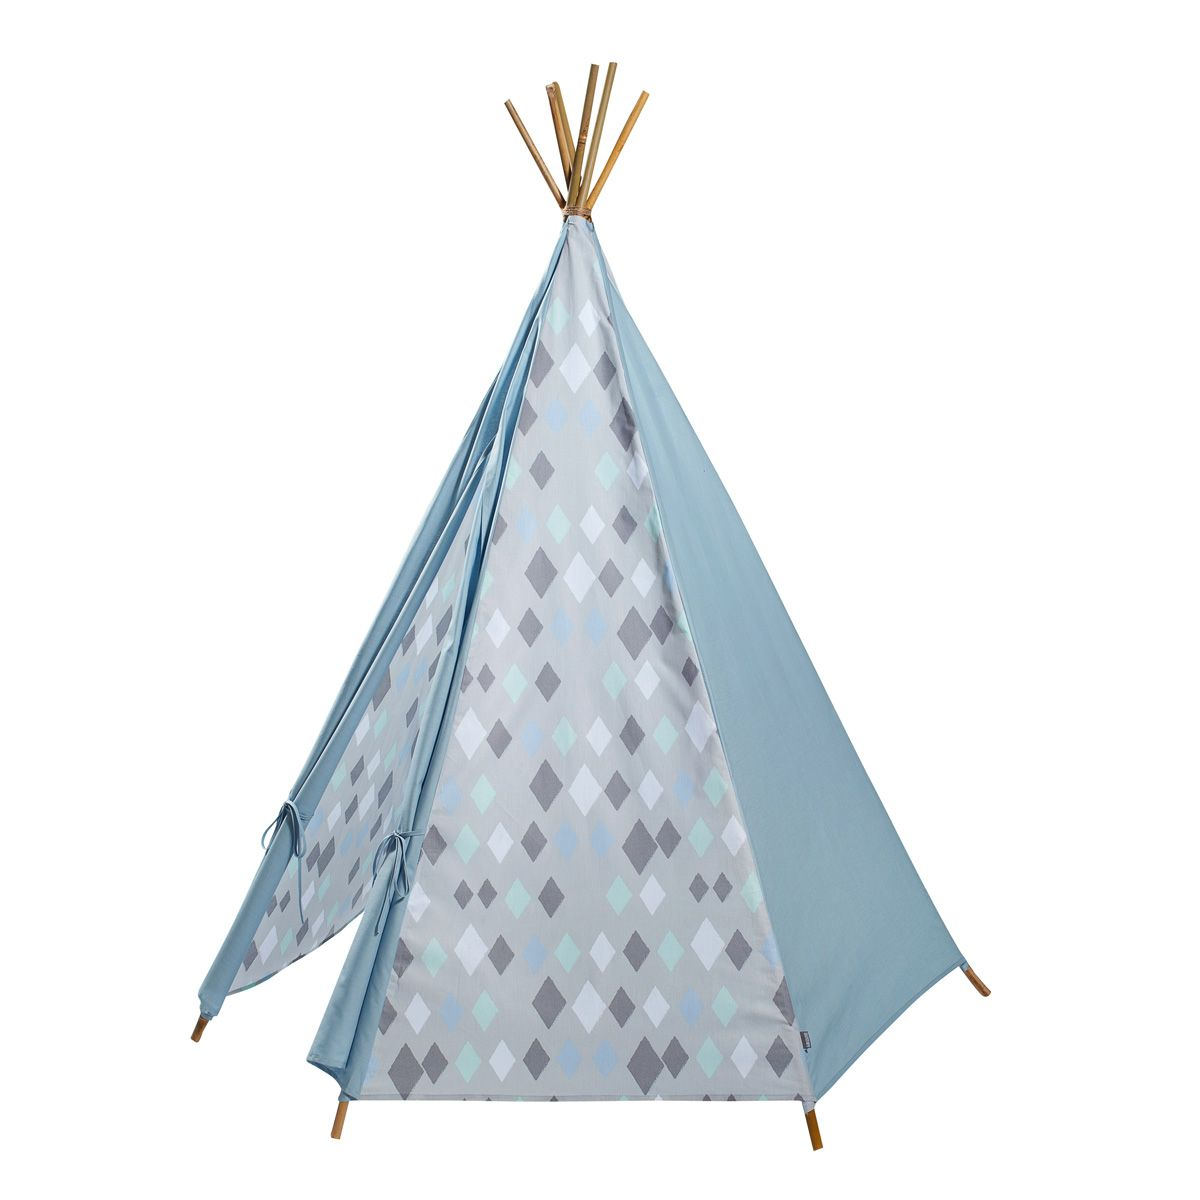 tipi zelt 39 wieber 39 rauten blau von kidsdepot kaufen bei little roomers. Black Bedroom Furniture Sets. Home Design Ideas